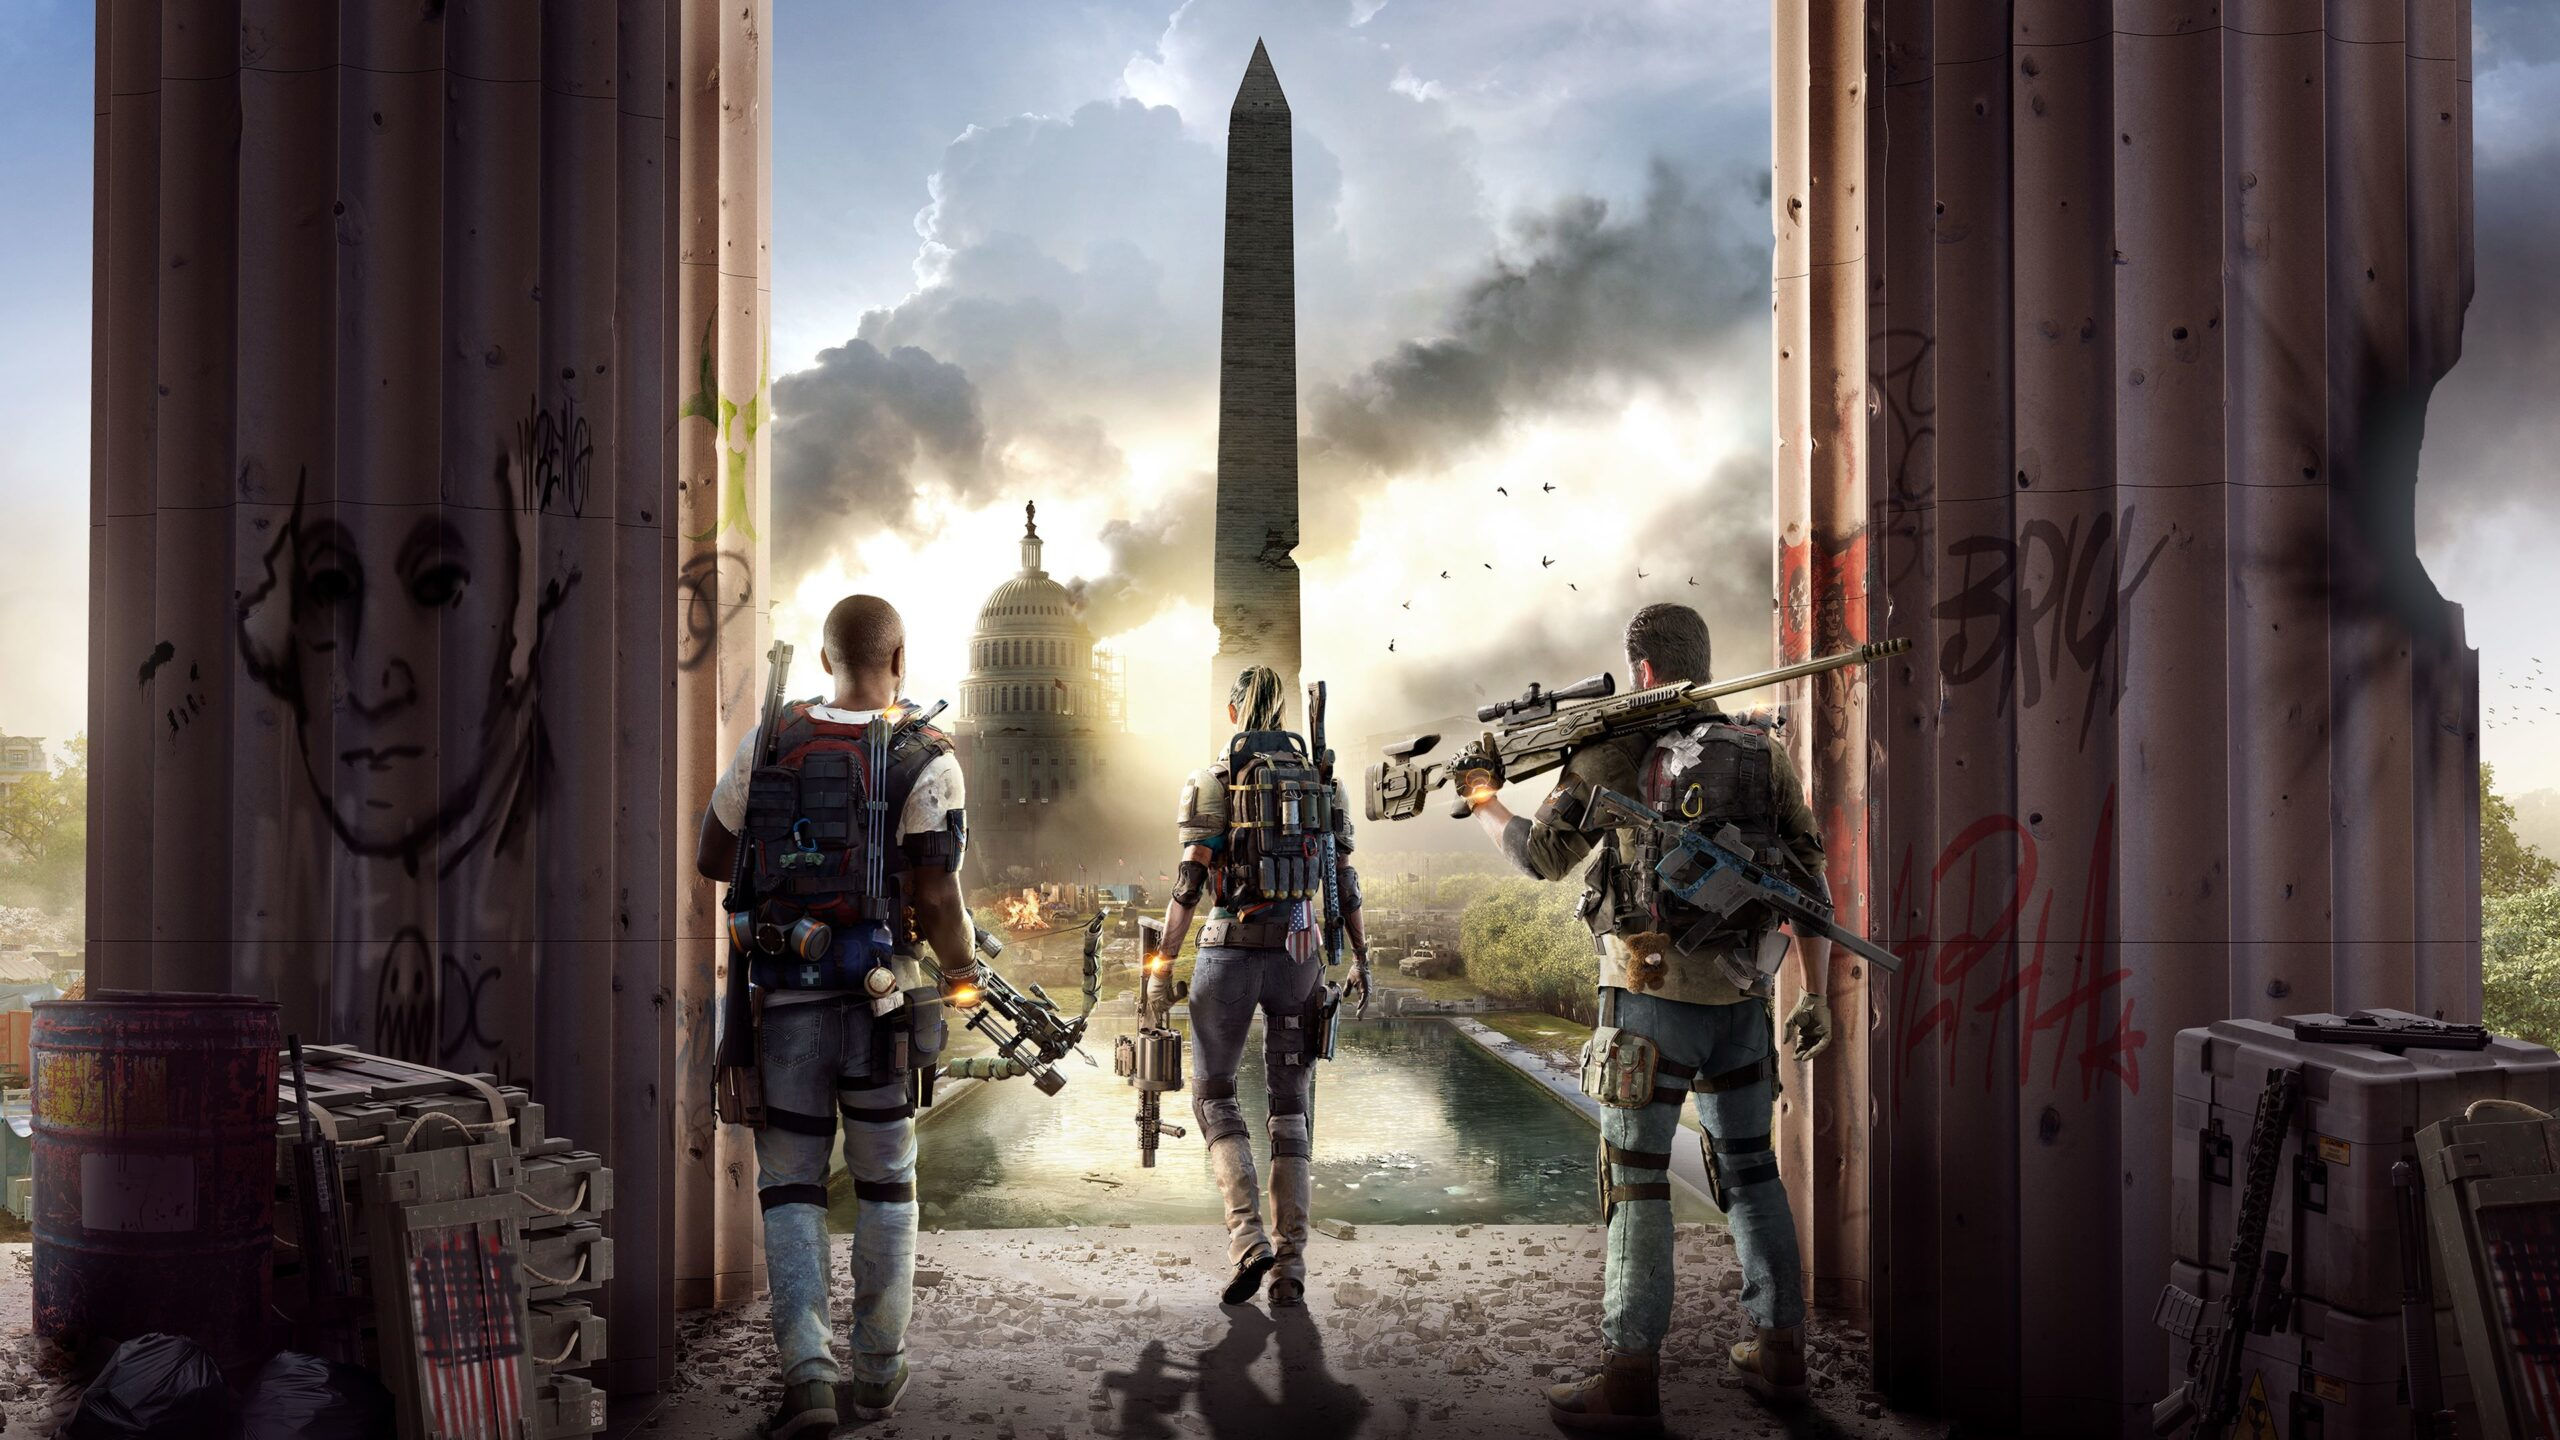 wallpapersden.com tom clancys the division 2 3840x2160 scaled